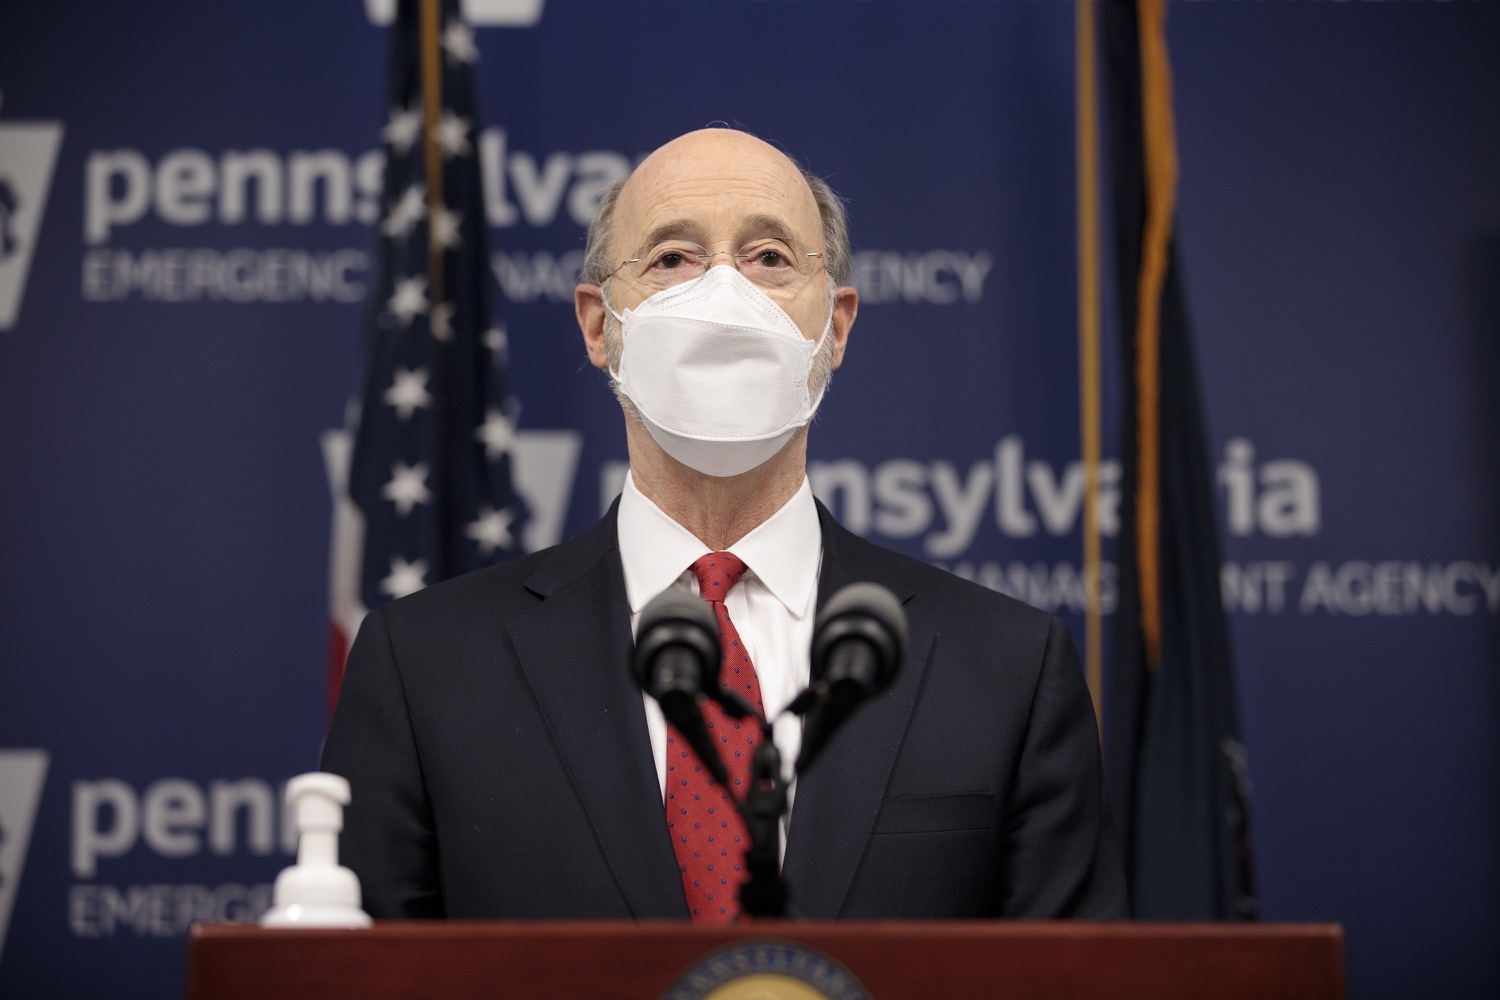 "<a href=""https://filesource.wostreaming.net/commonwealthofpa/photo/18540_gov_backtowork_dz_12.jpg"" target=""_blank"">⇣ Download Photo<br></a>Pennsylvania Governor Tom Wolf speaking at the press conference. The COVID-19 global pandemic has significantly affected Pennsylvania workers, businesses and communities. To bolster economic recovery efforts and position Pennsylvania for economic growth, Governor Tom Wolf today unveiled his Back to Work PA plan.   Harrisburg, PA  February 22, 2021"